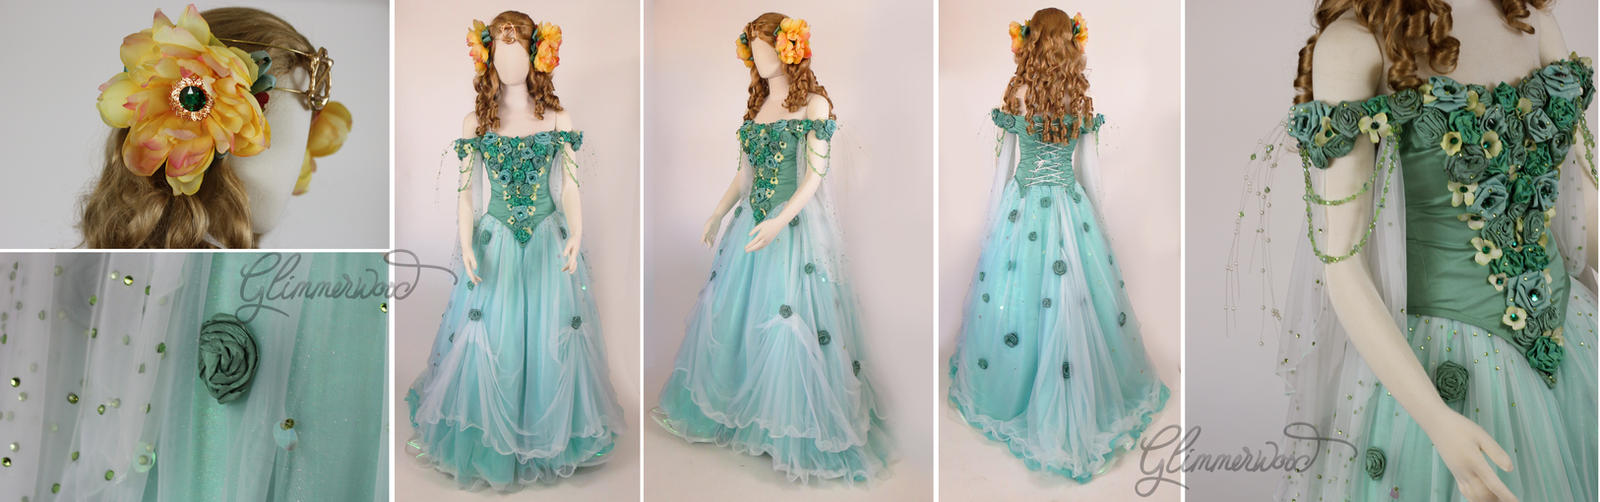 Ozma of Oz (Return to Oz) Cosplay Costume Gown by glimmerwood